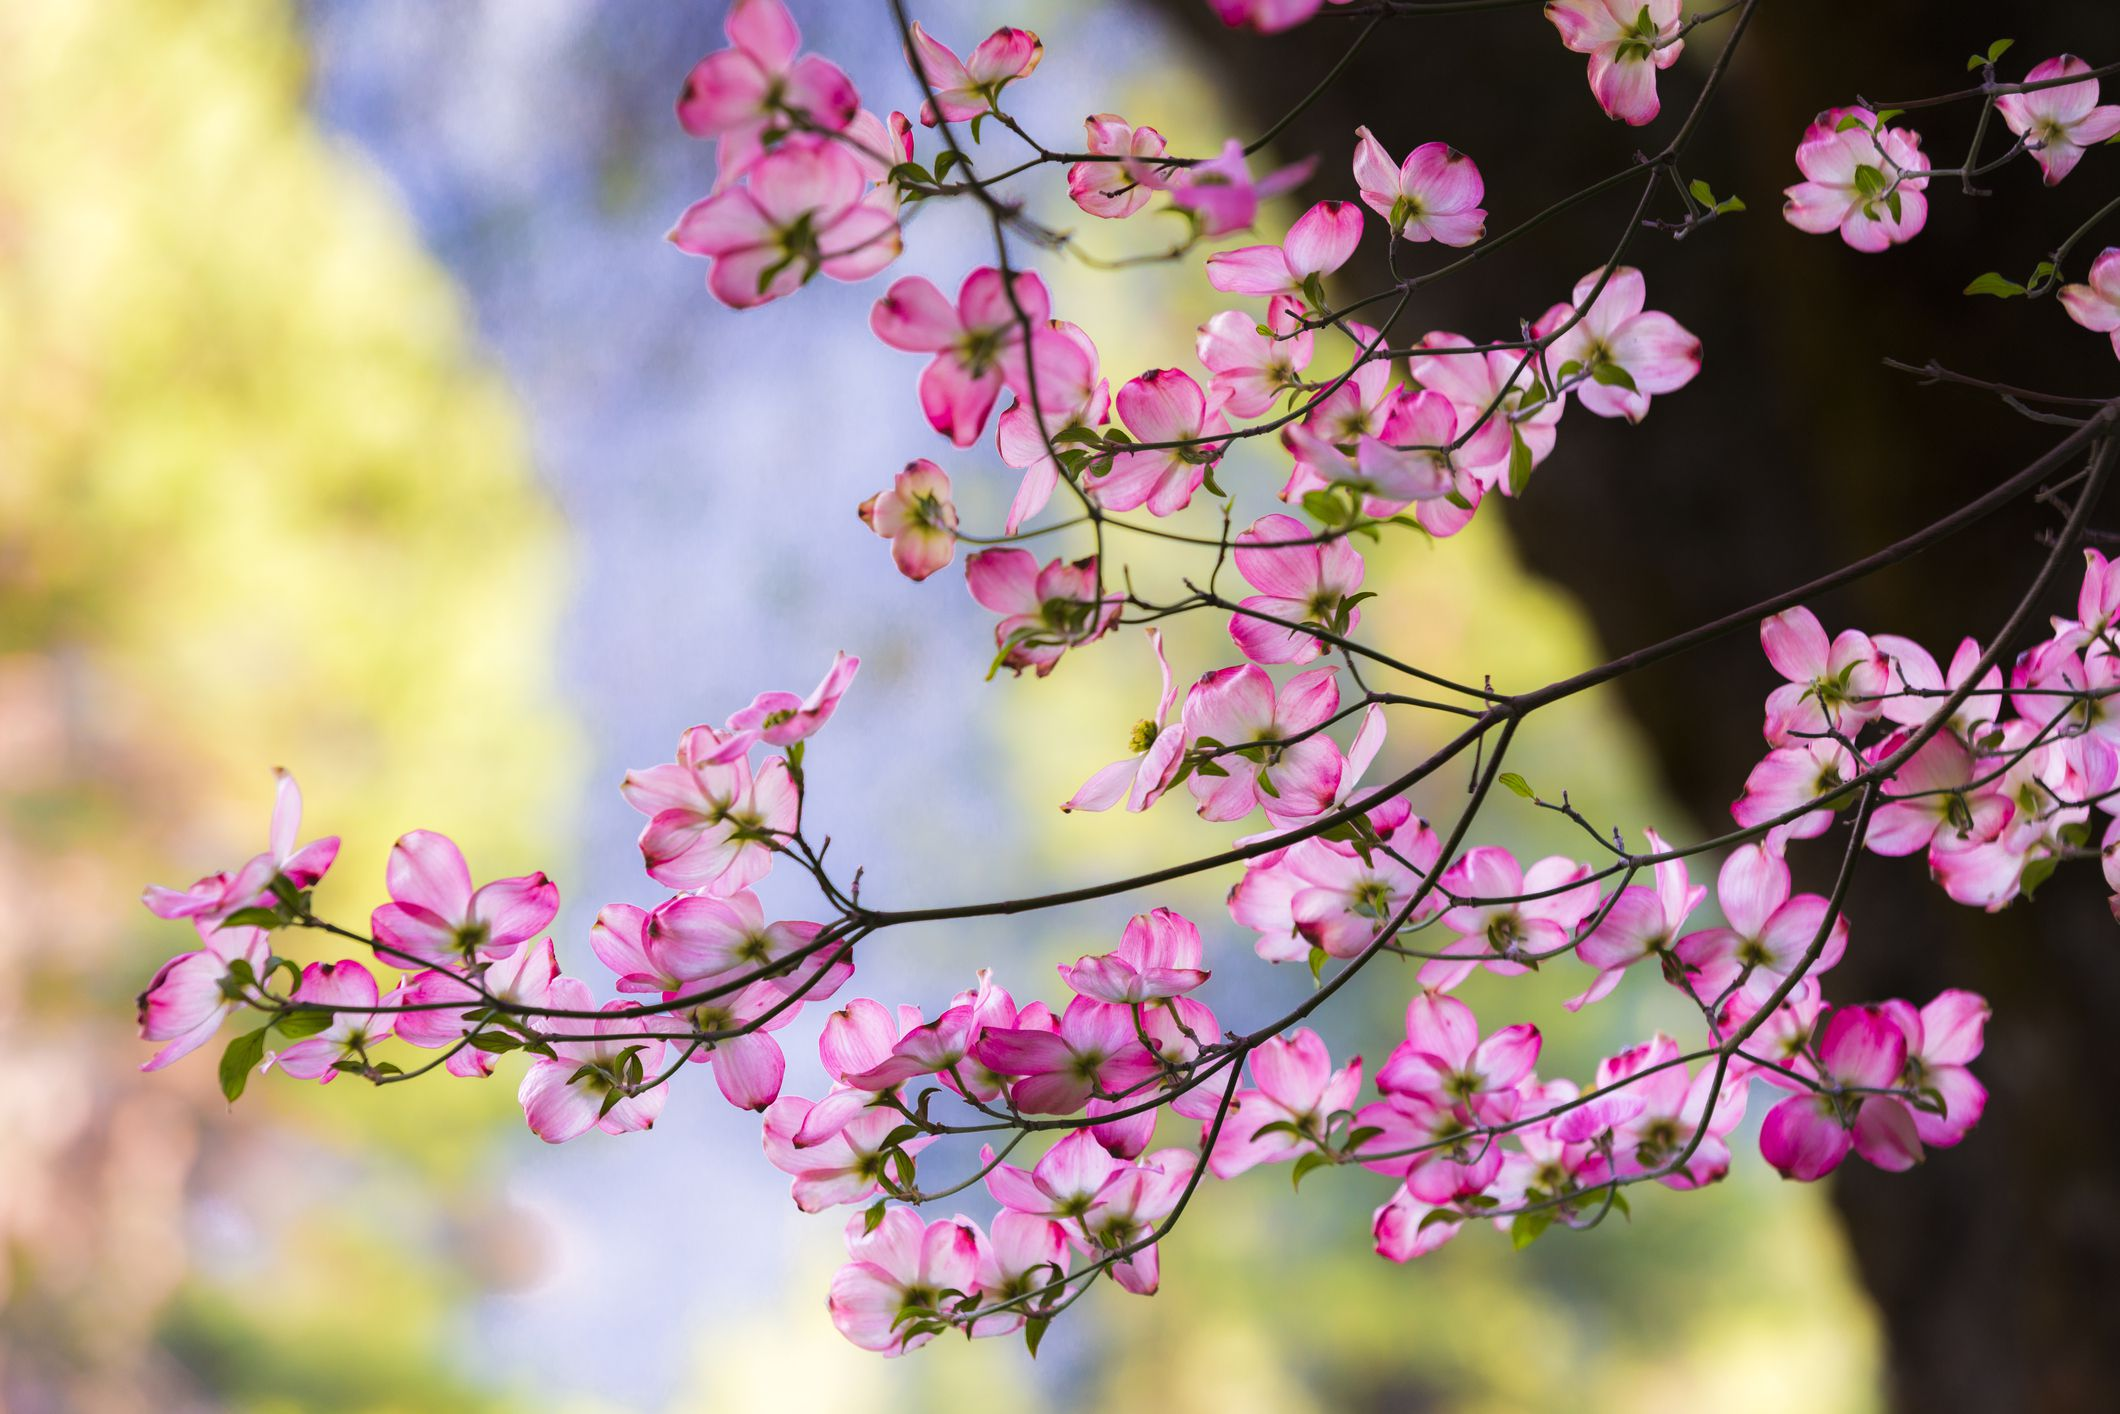 How To Grow And Care For Pink Dogwood Trees